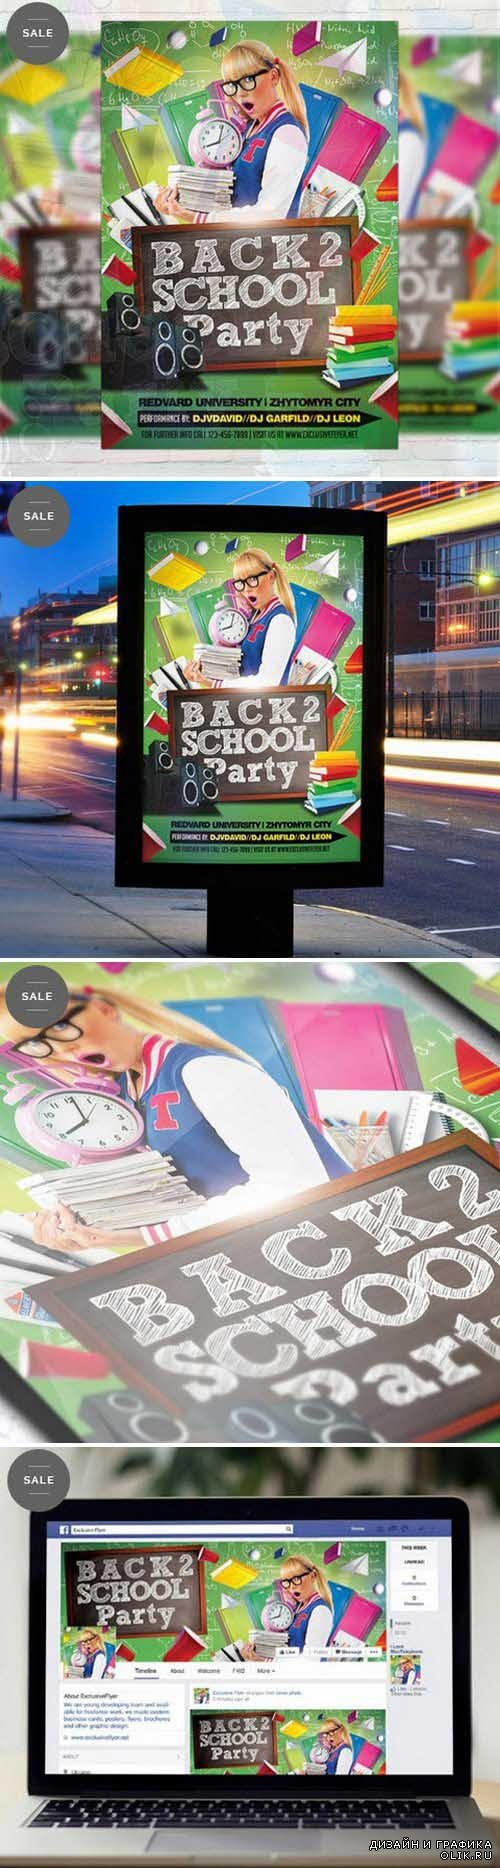 Flyer Template - Back To School Party Vol.4 + Facebook Cover